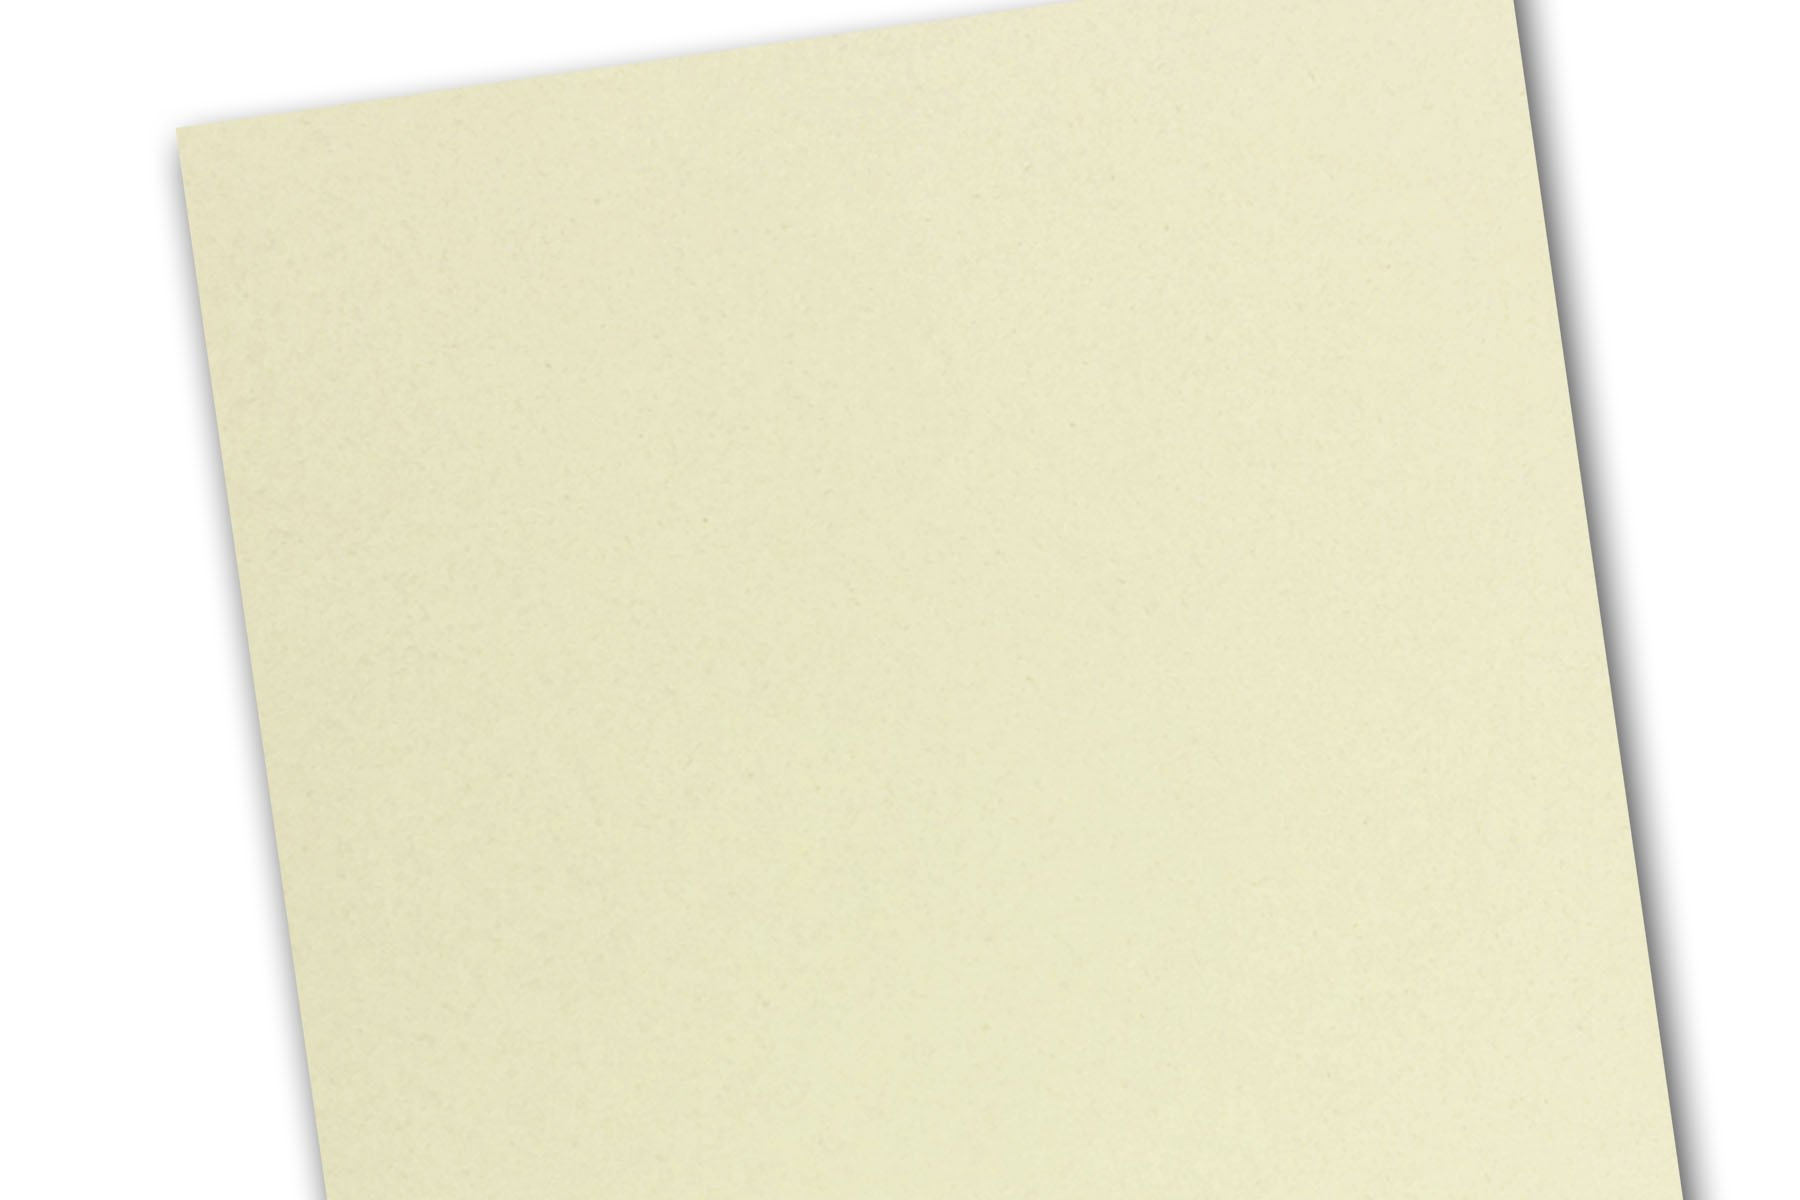 Royal Fibers 8.5'' x 5.5'' inch Half Letter 80# Cover Card Stock - 216 gsm 30% Recycled (250 Pack, Cream)